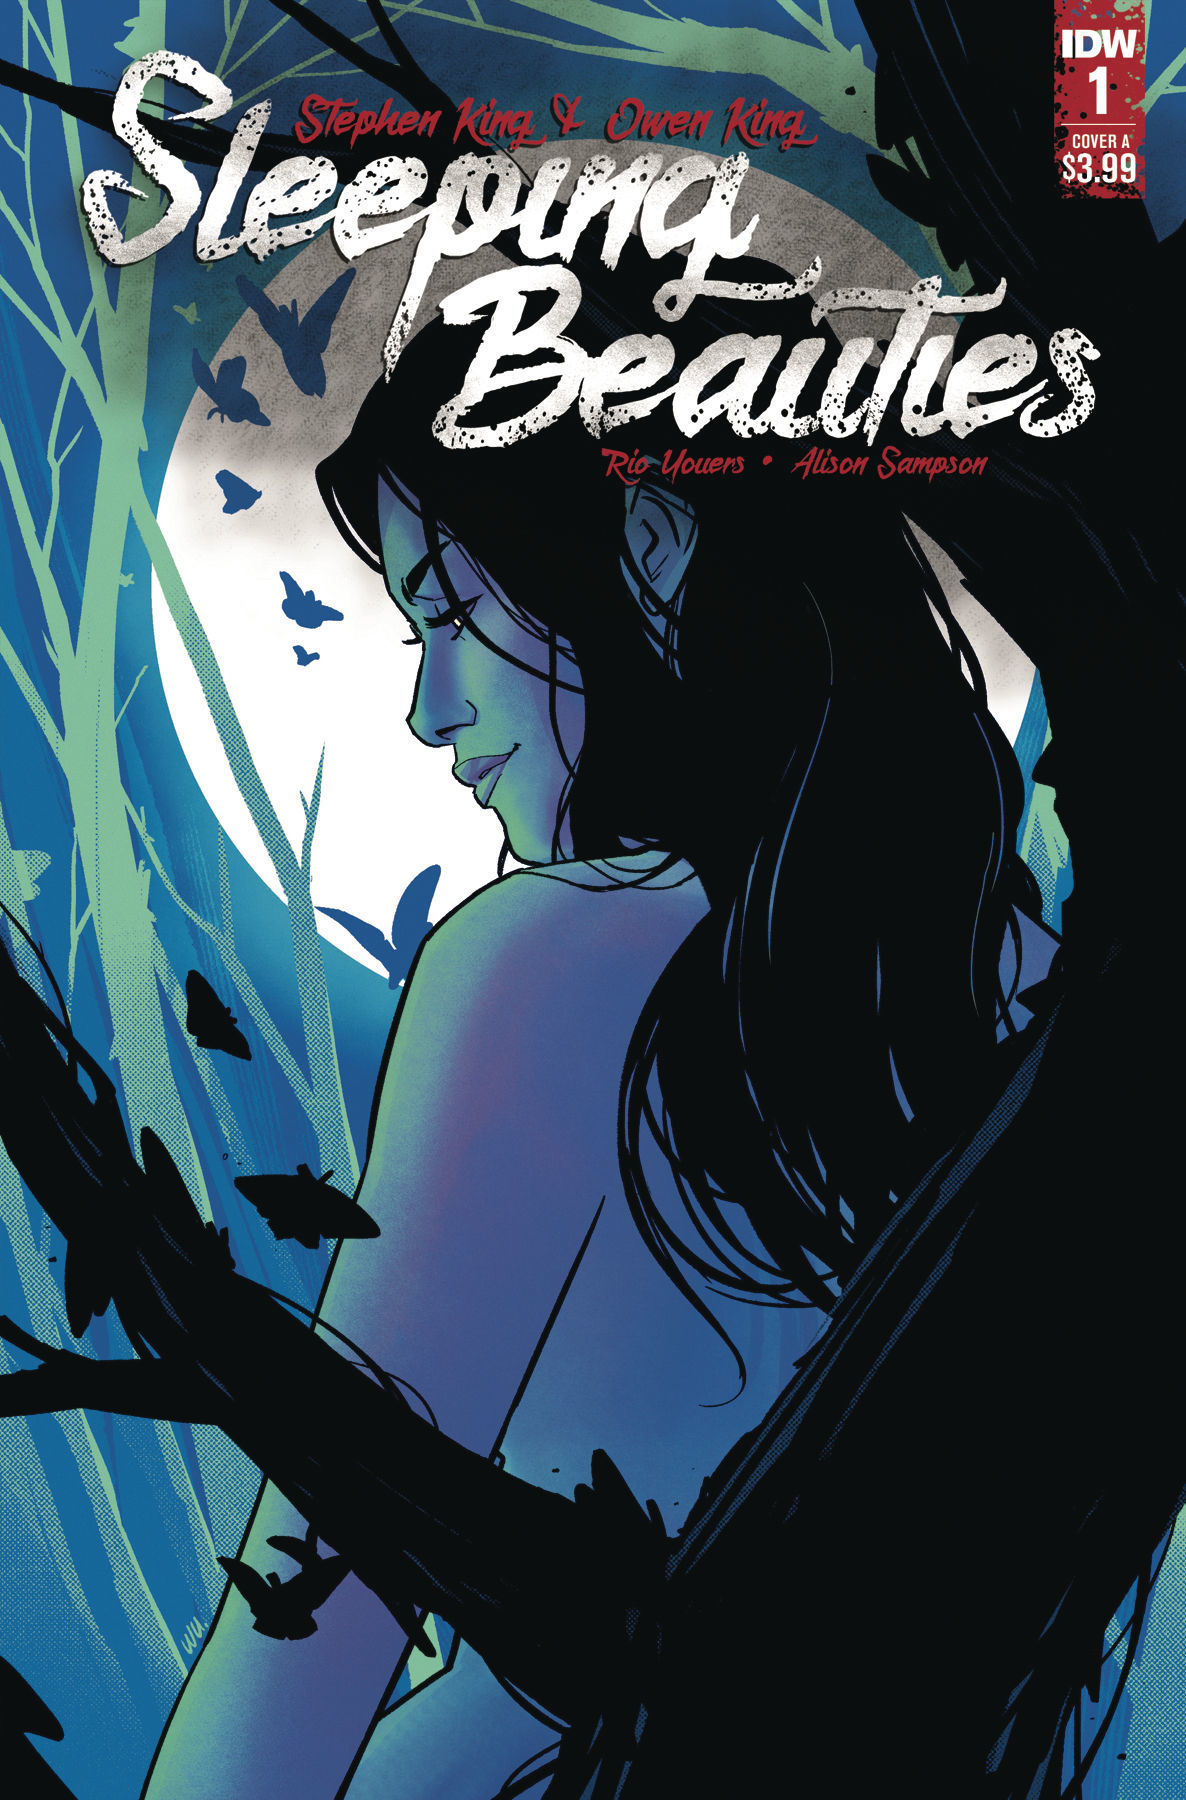 A slumbering sickness descends in IDW's take on Stephen King's Sleeping Beauties